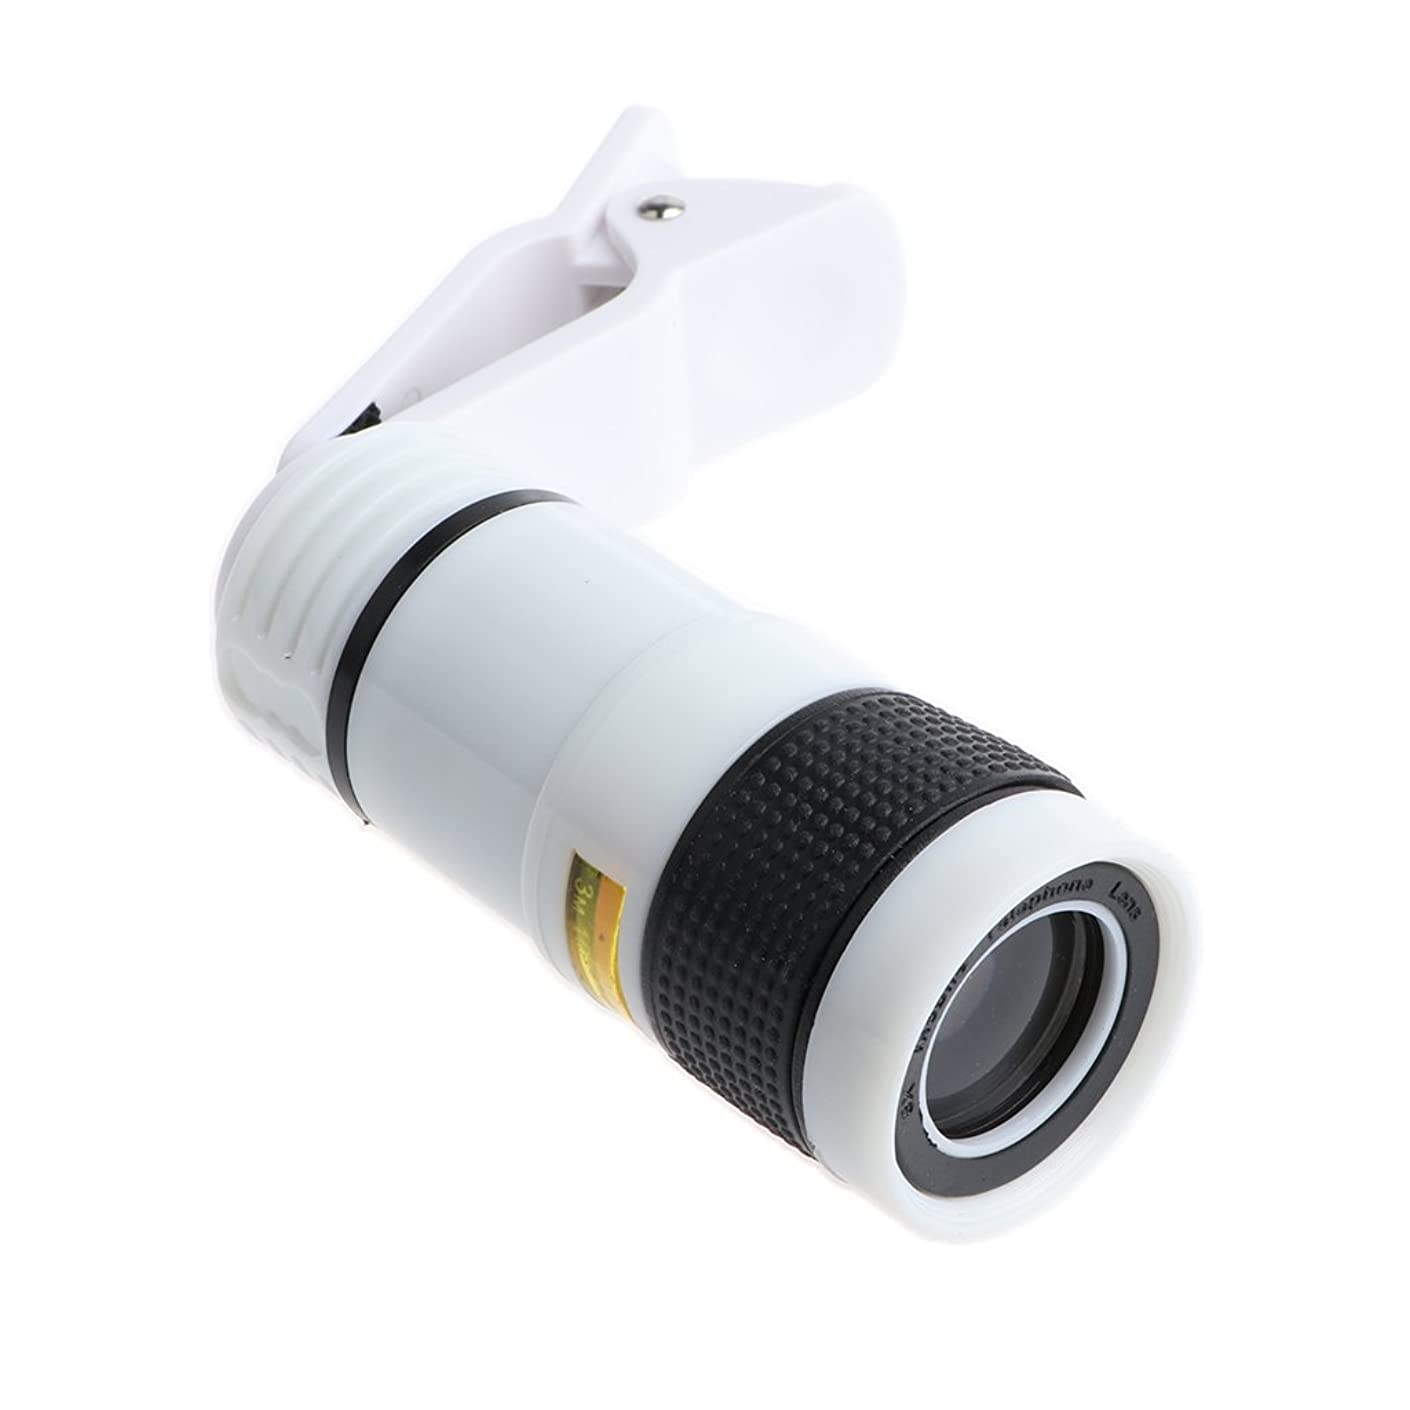 D DOLITY Easy Install Safety Mobile Phone Camera Zoom Lens Kit Clip on Telescope 8X